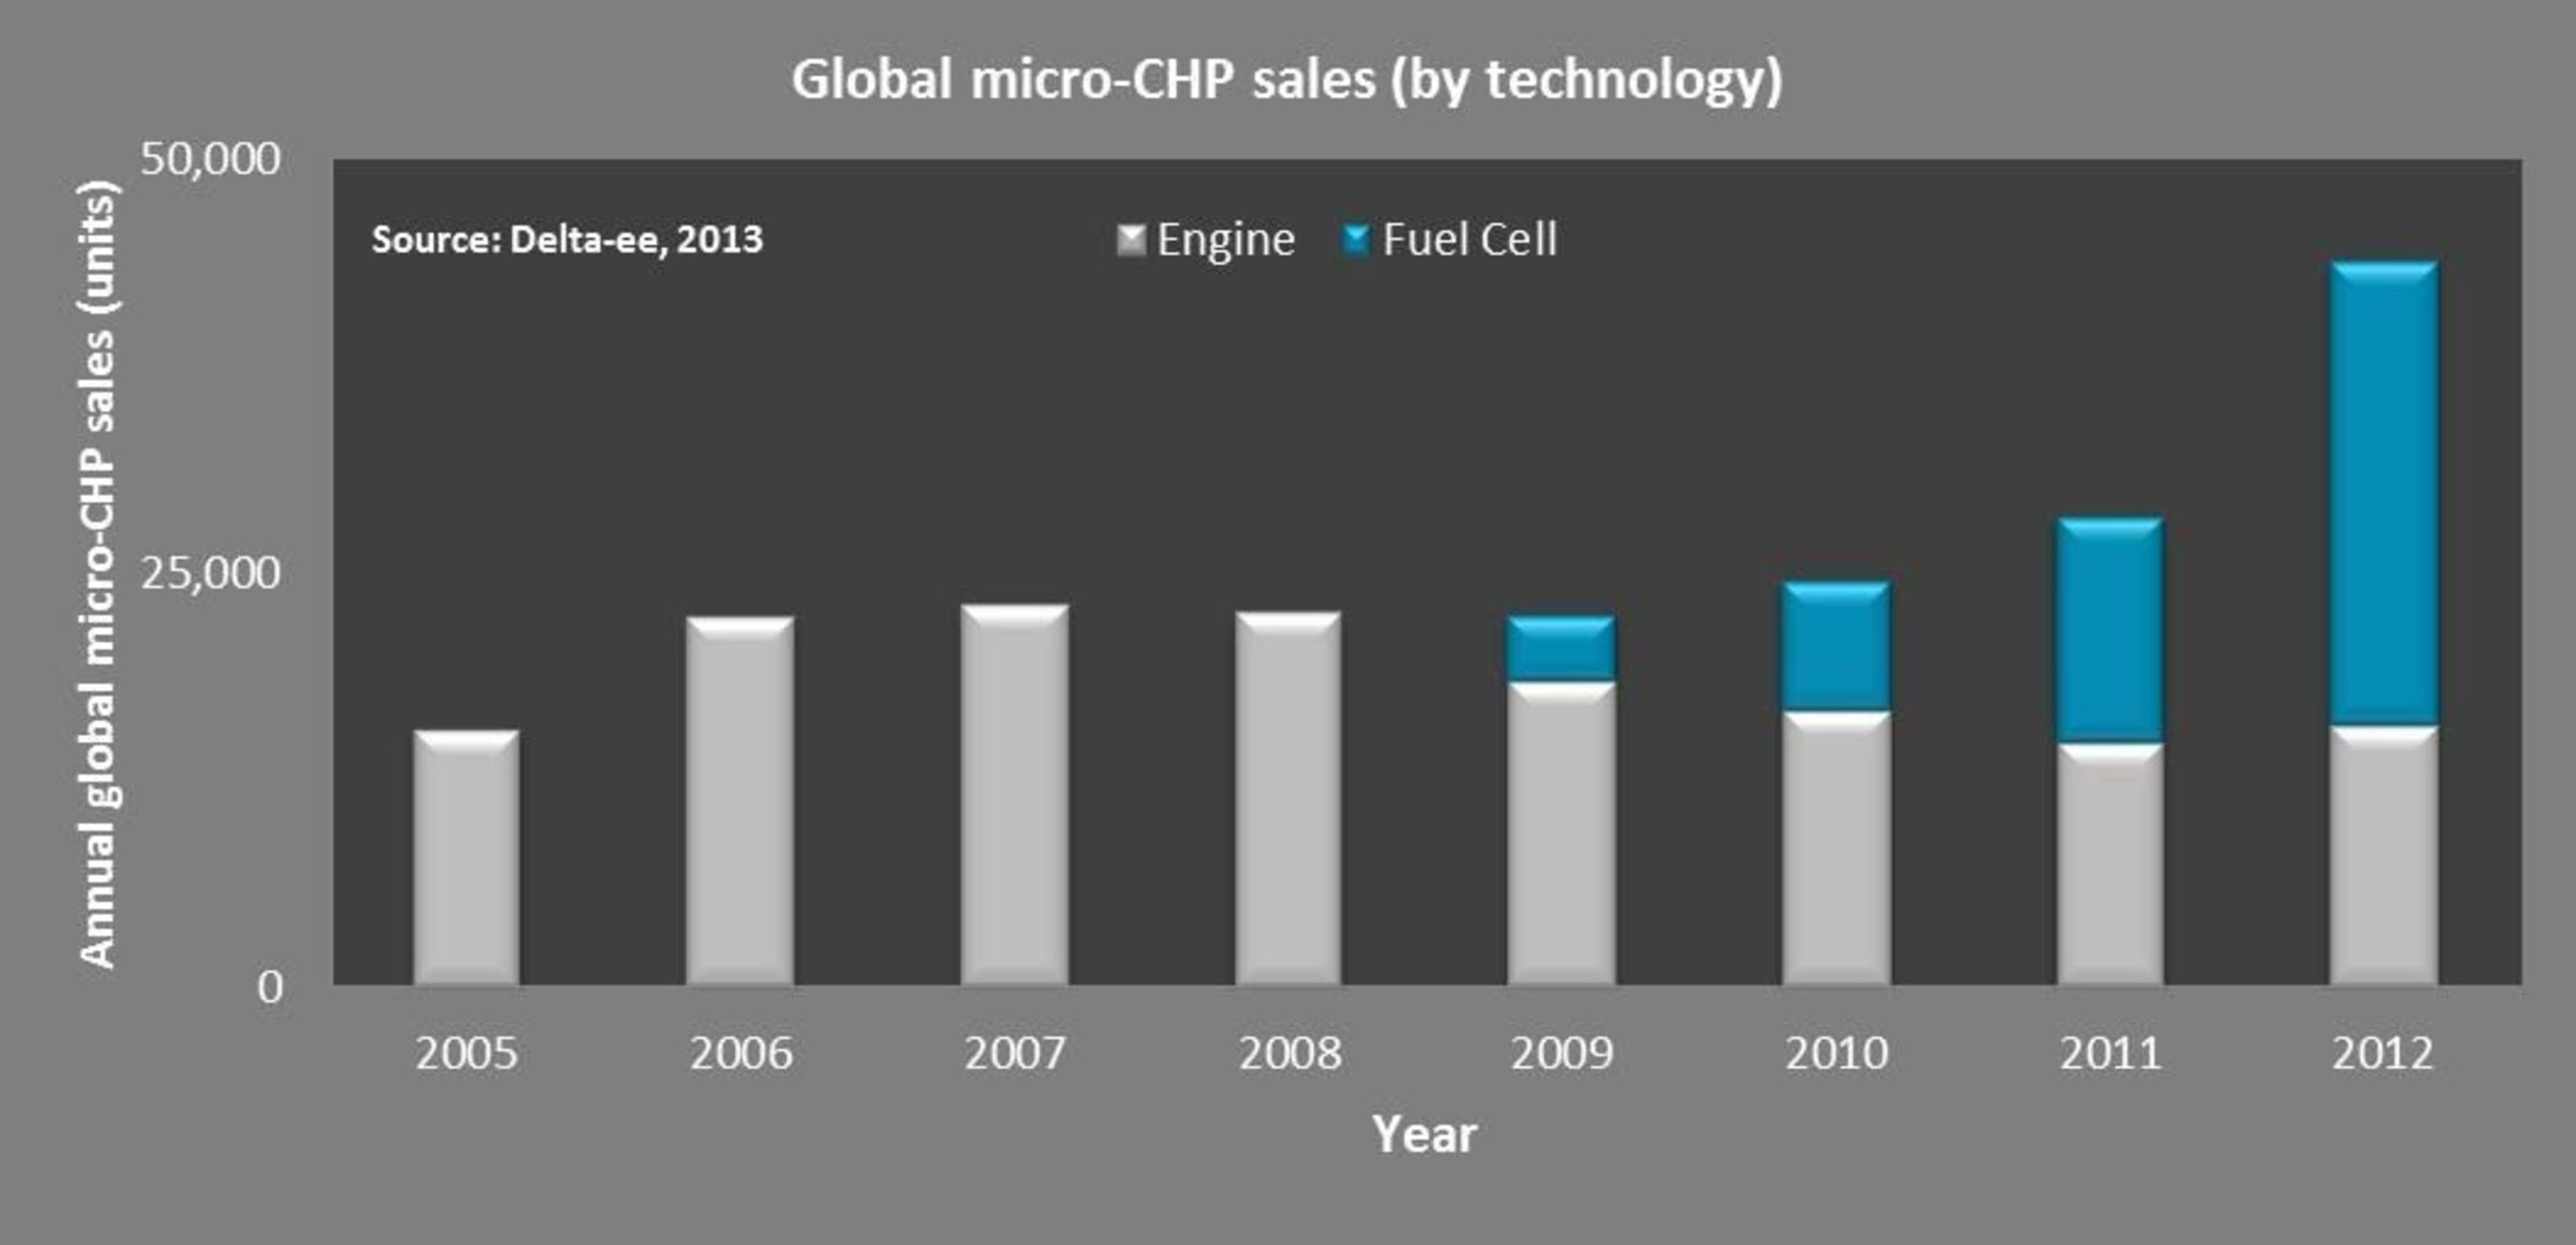 Technology shift in micro-CHP: fuel cell outsells engines for the first time